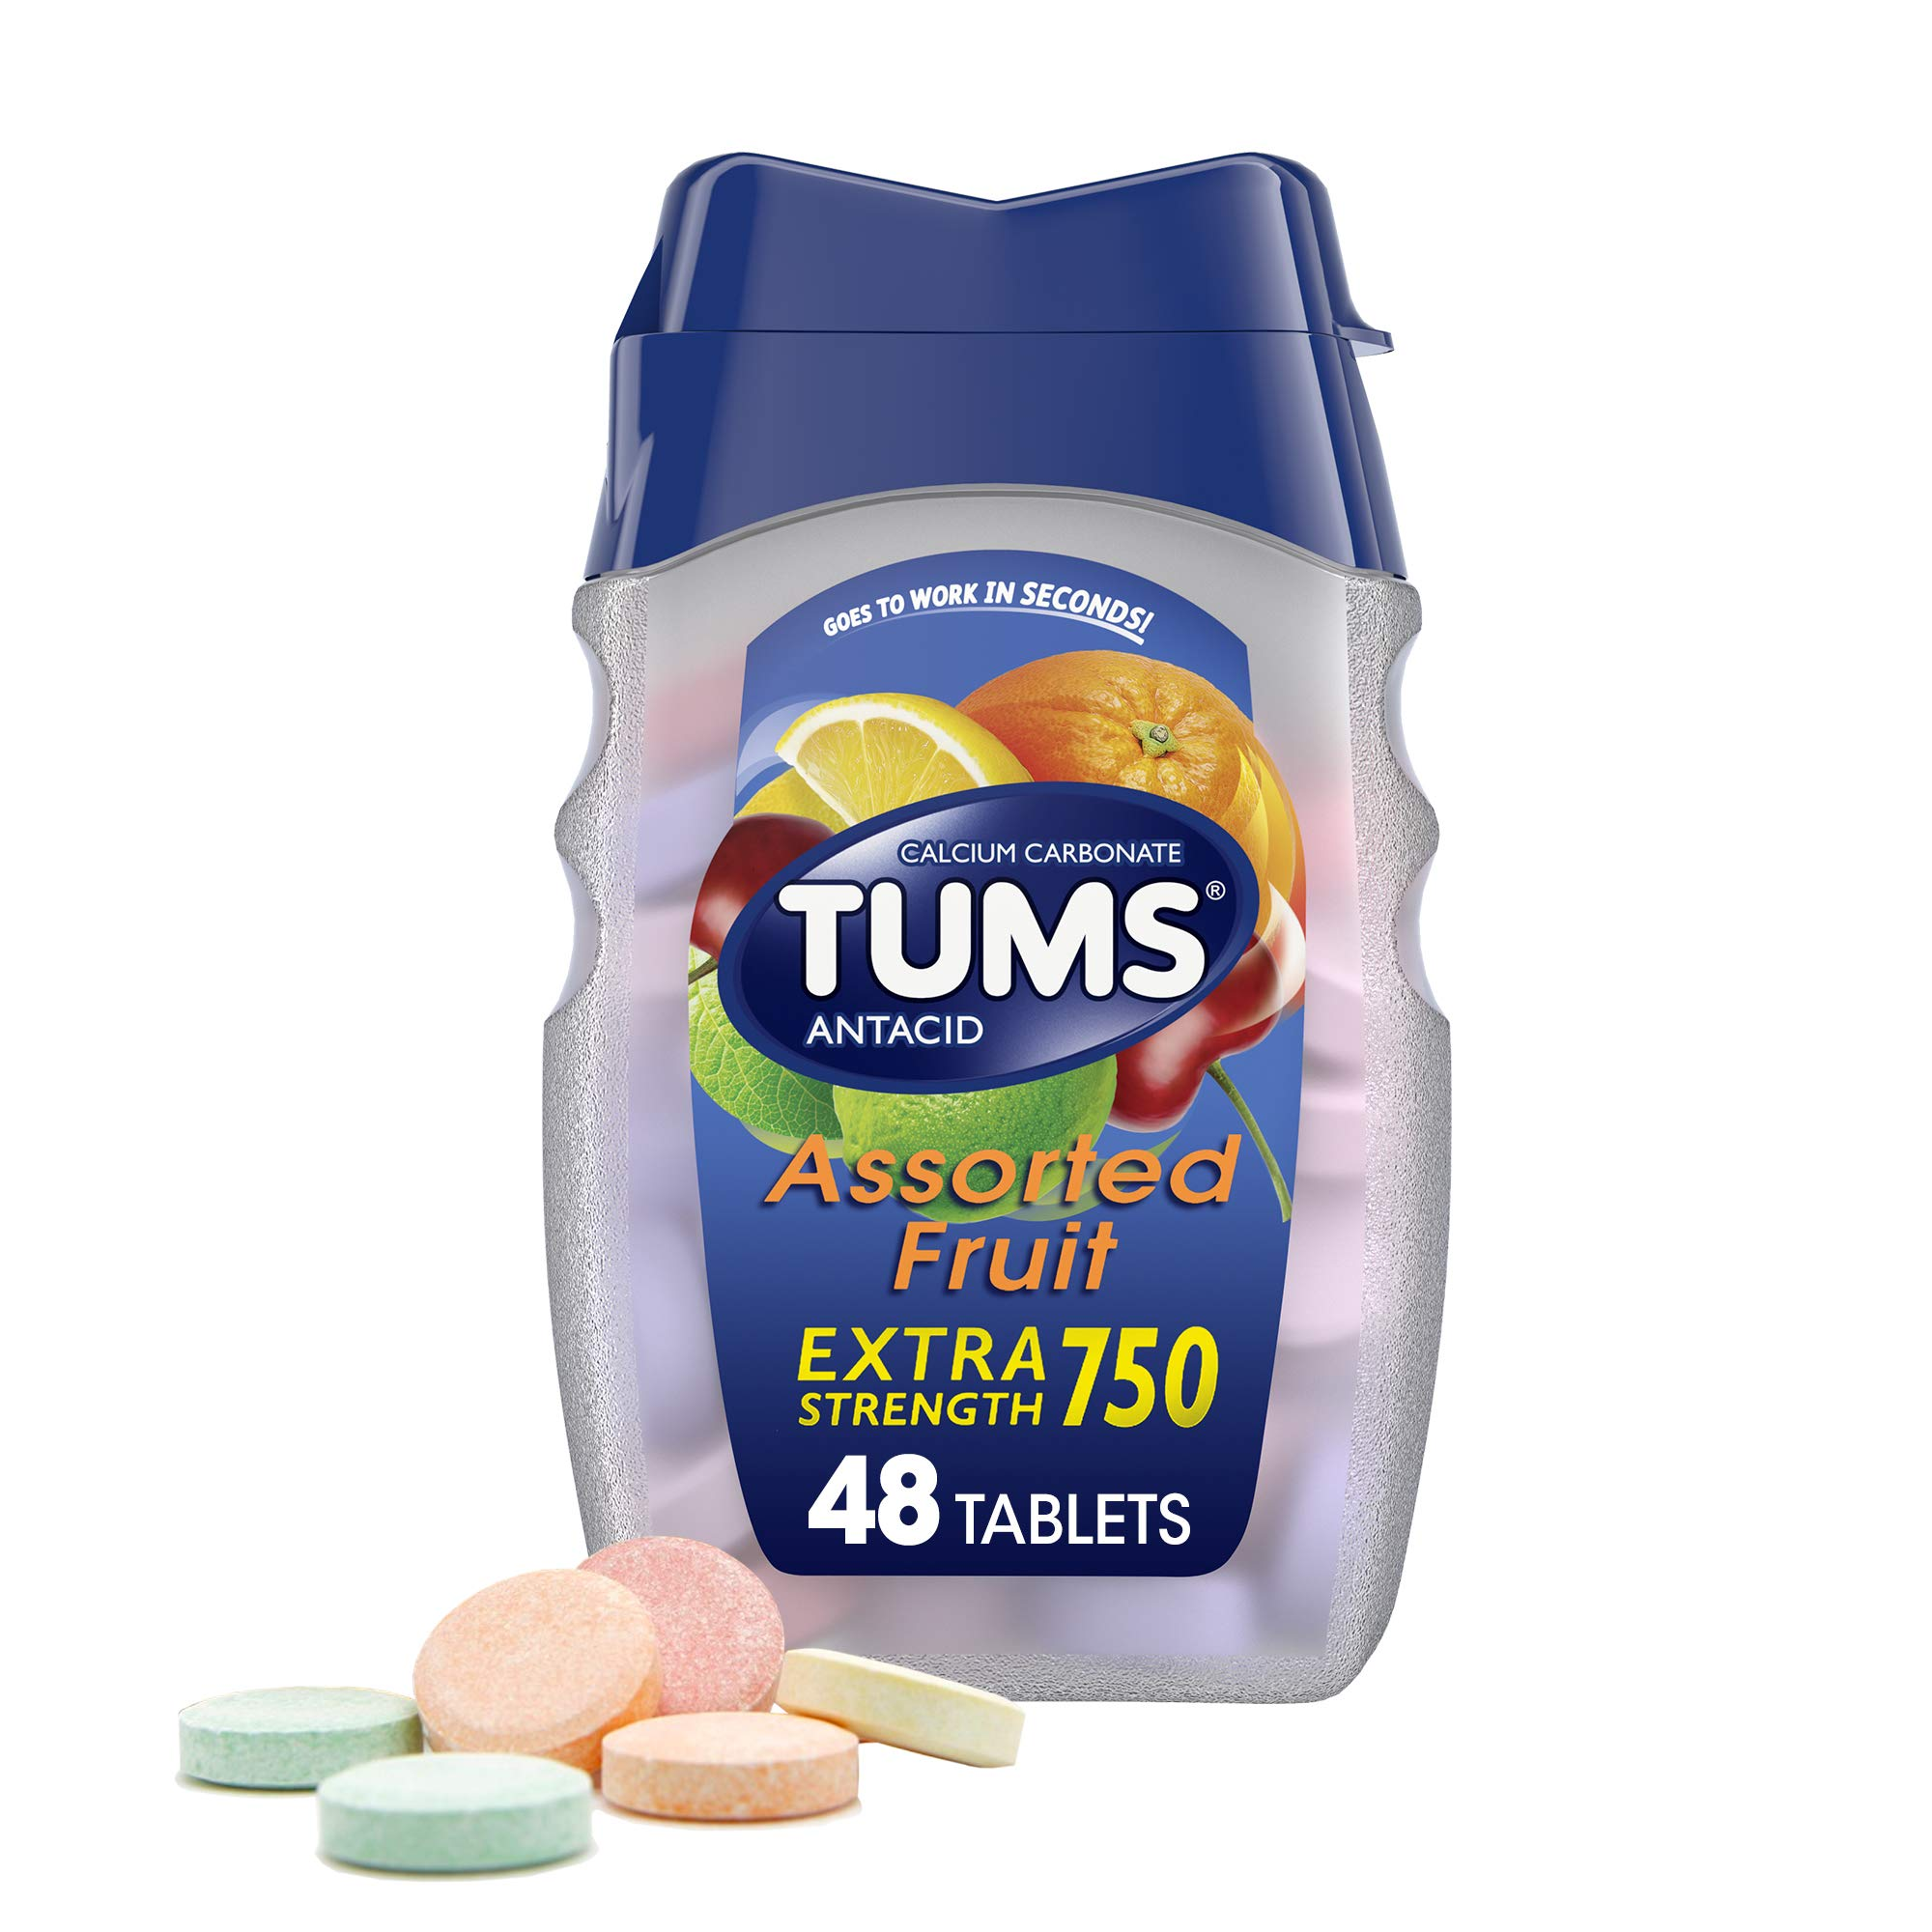 TUMS Extra Strength Antacid Tablets for Chewable Heartburn Relief and Acid Indigestion Relief, Assorted Fruit Flavors - Assorted Flavors, 48 Count (Pack of 1)